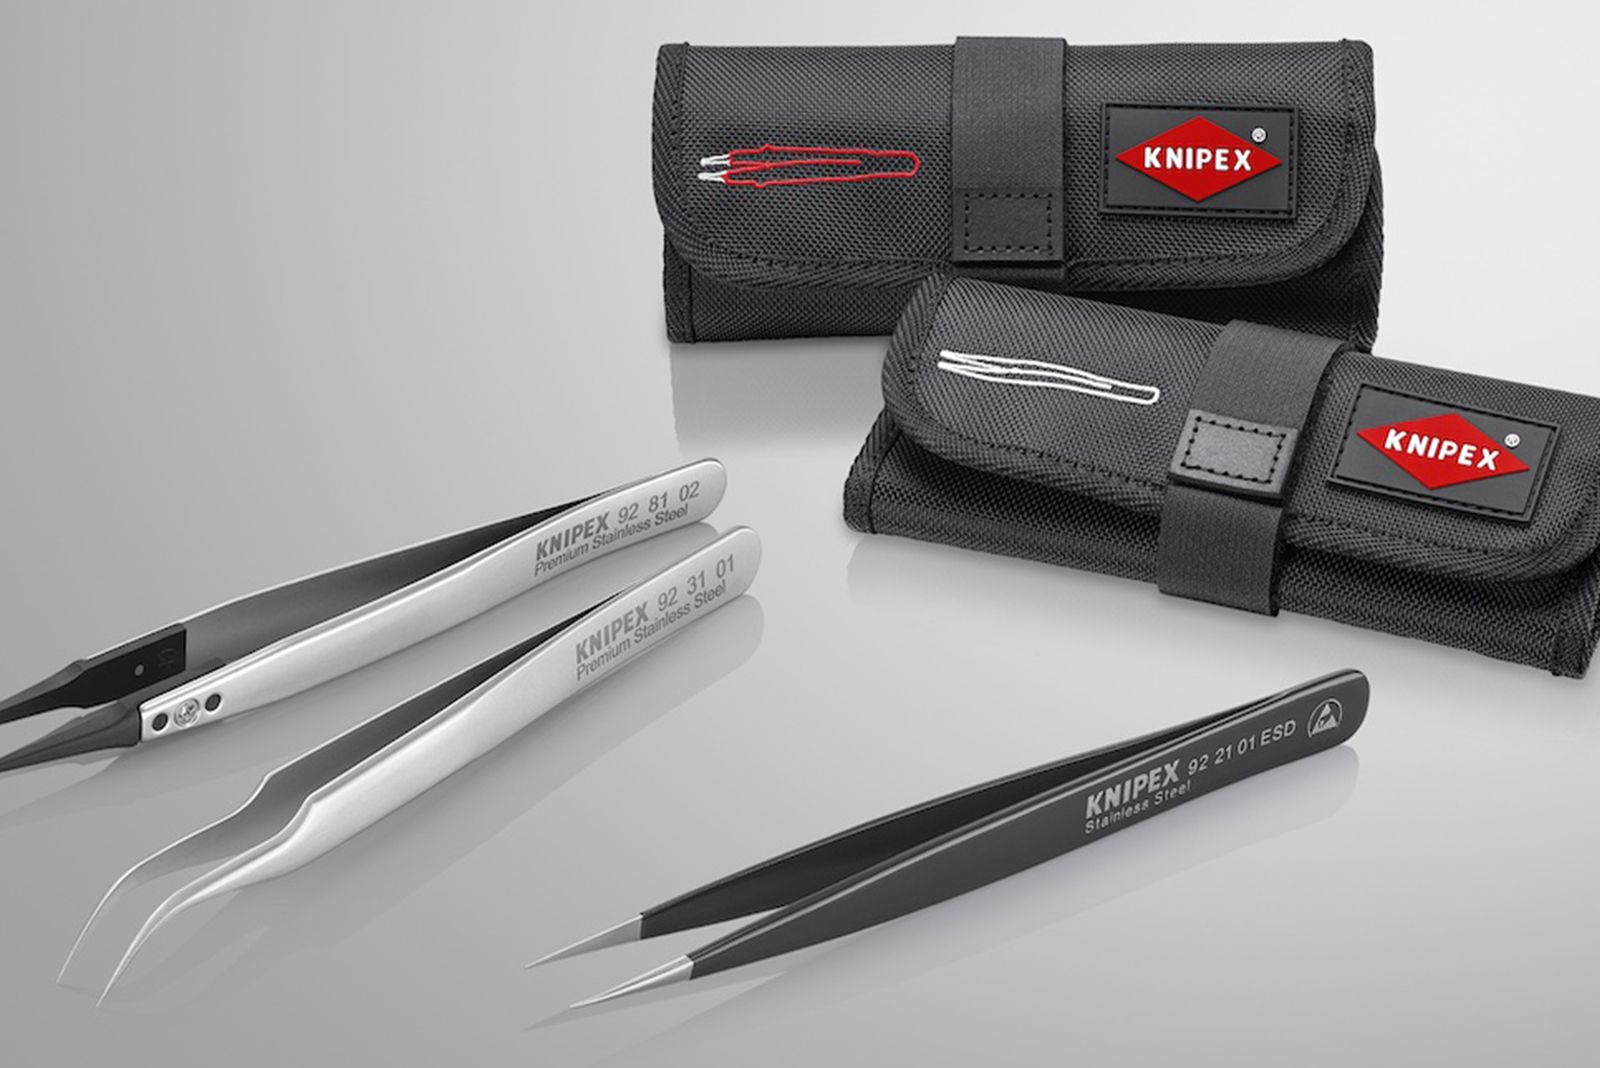 KNIPEX launches range of tweezers: specialists for the finest gripping, holding and cutting